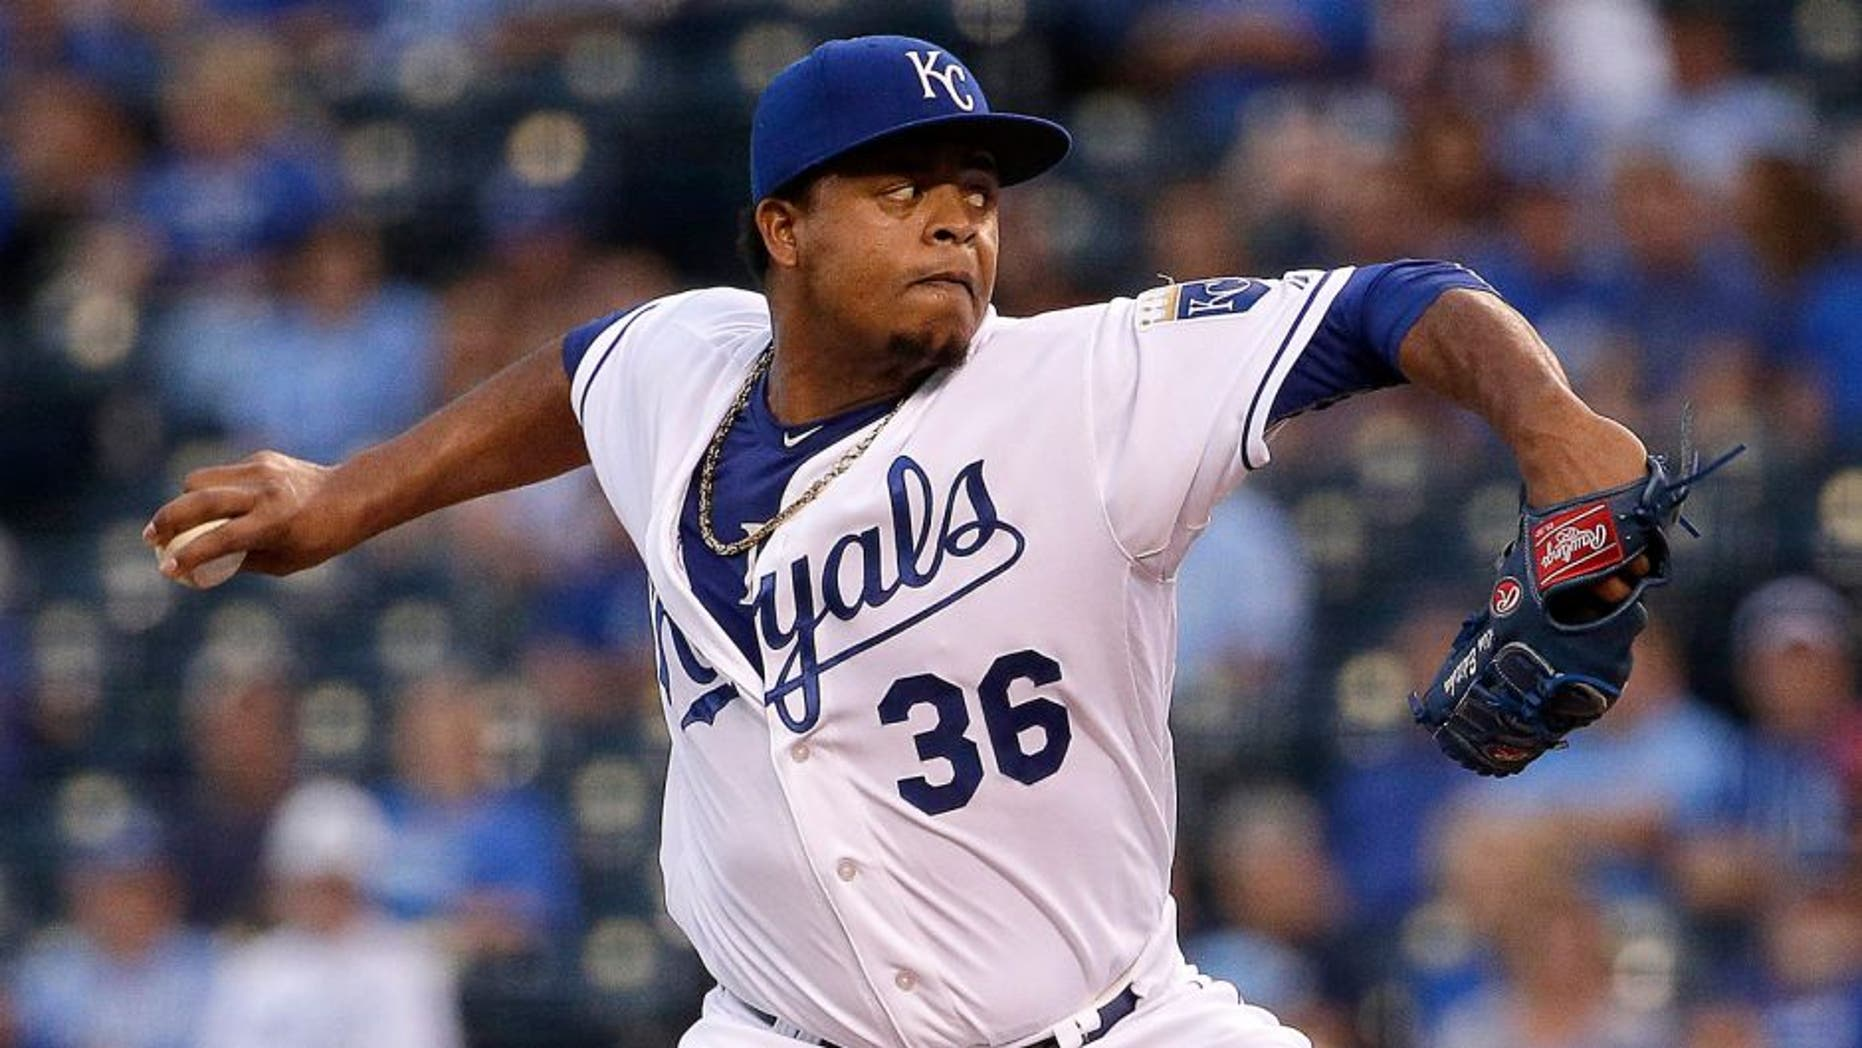 Kansas City Royals starting pitcher Edinson Volquez throws during the first inning of a baseball game against the Minnesota Twins Tuesday, Sept. 8, 2015, in Kansas City, Mo. (AP Photo/Charlie Riedel)